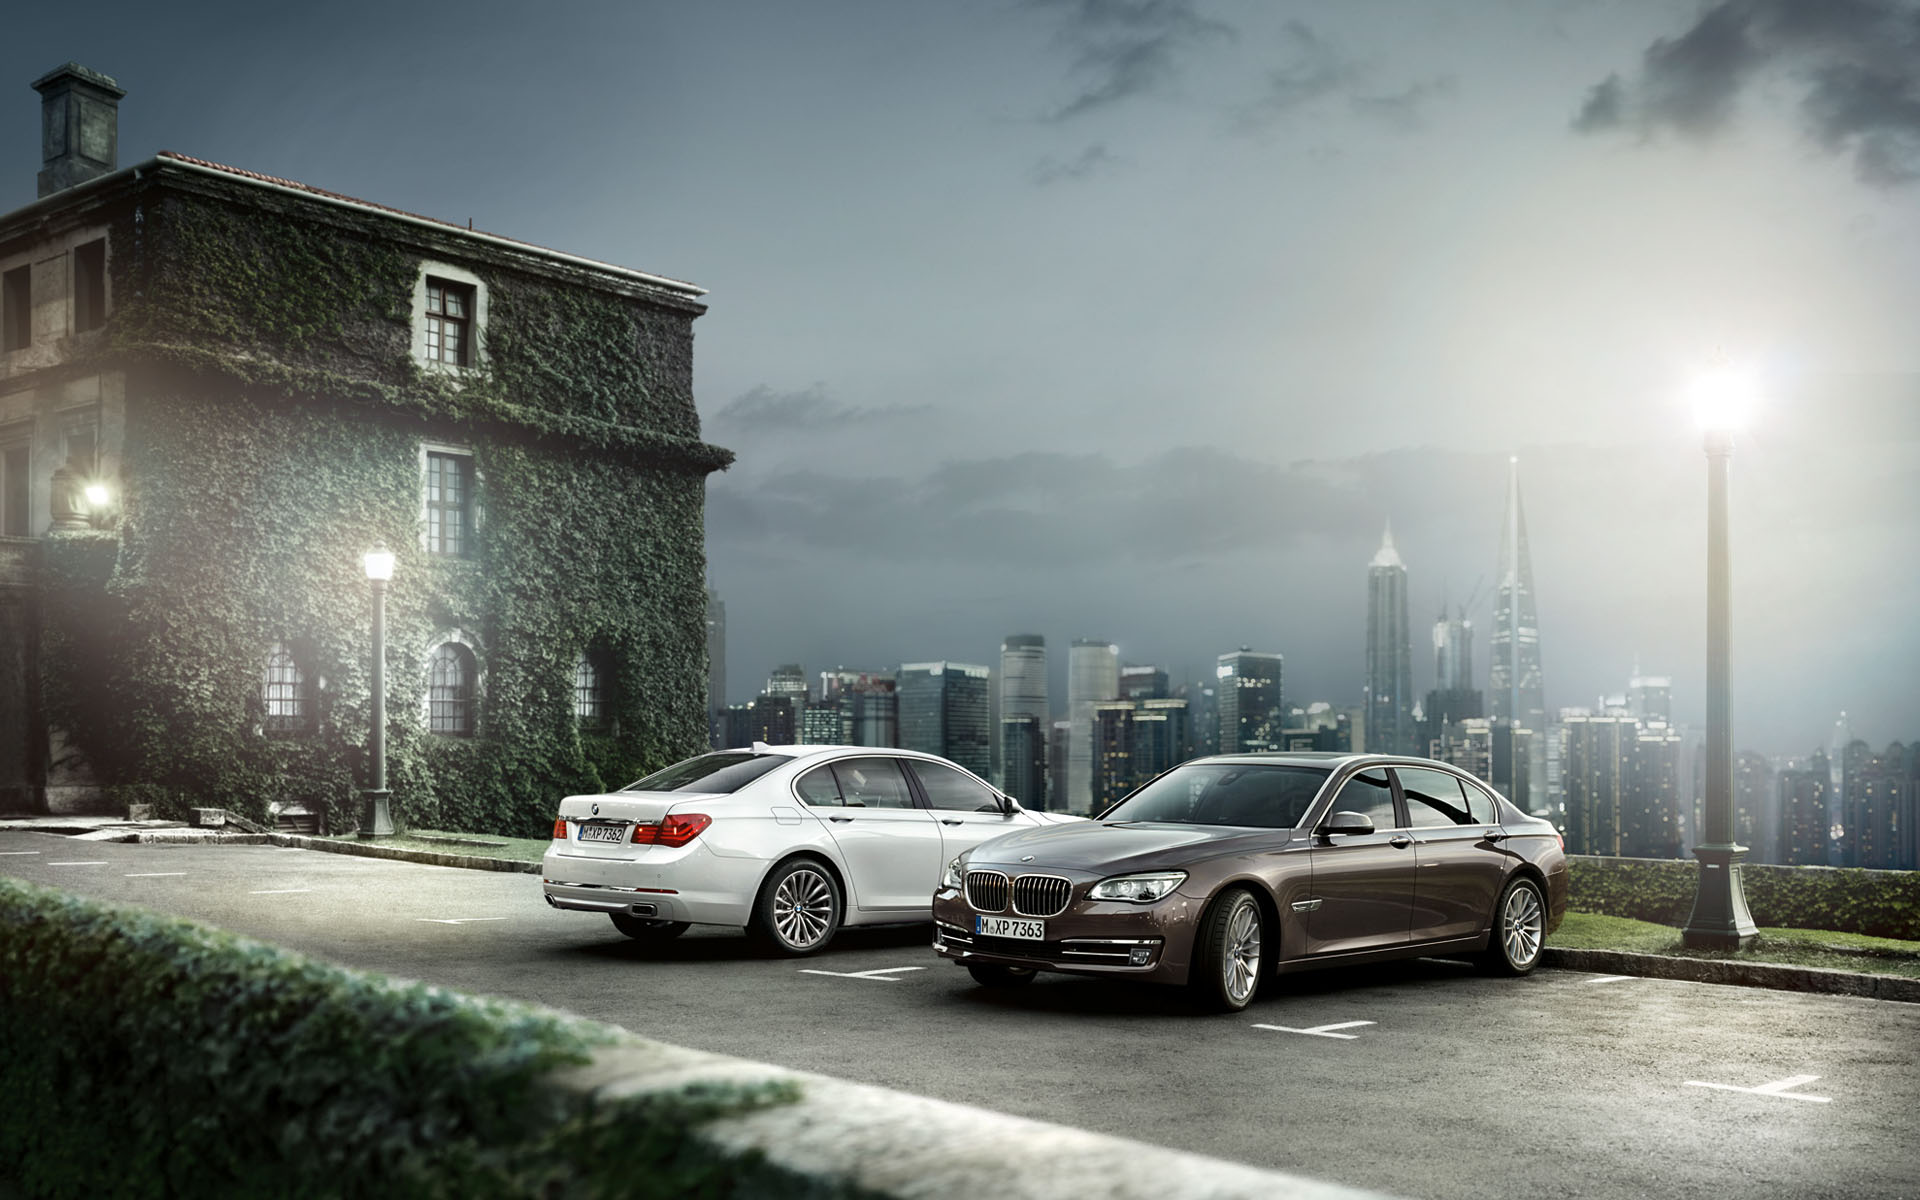 BMW 7 Series Wallpaper 01 1920x1200